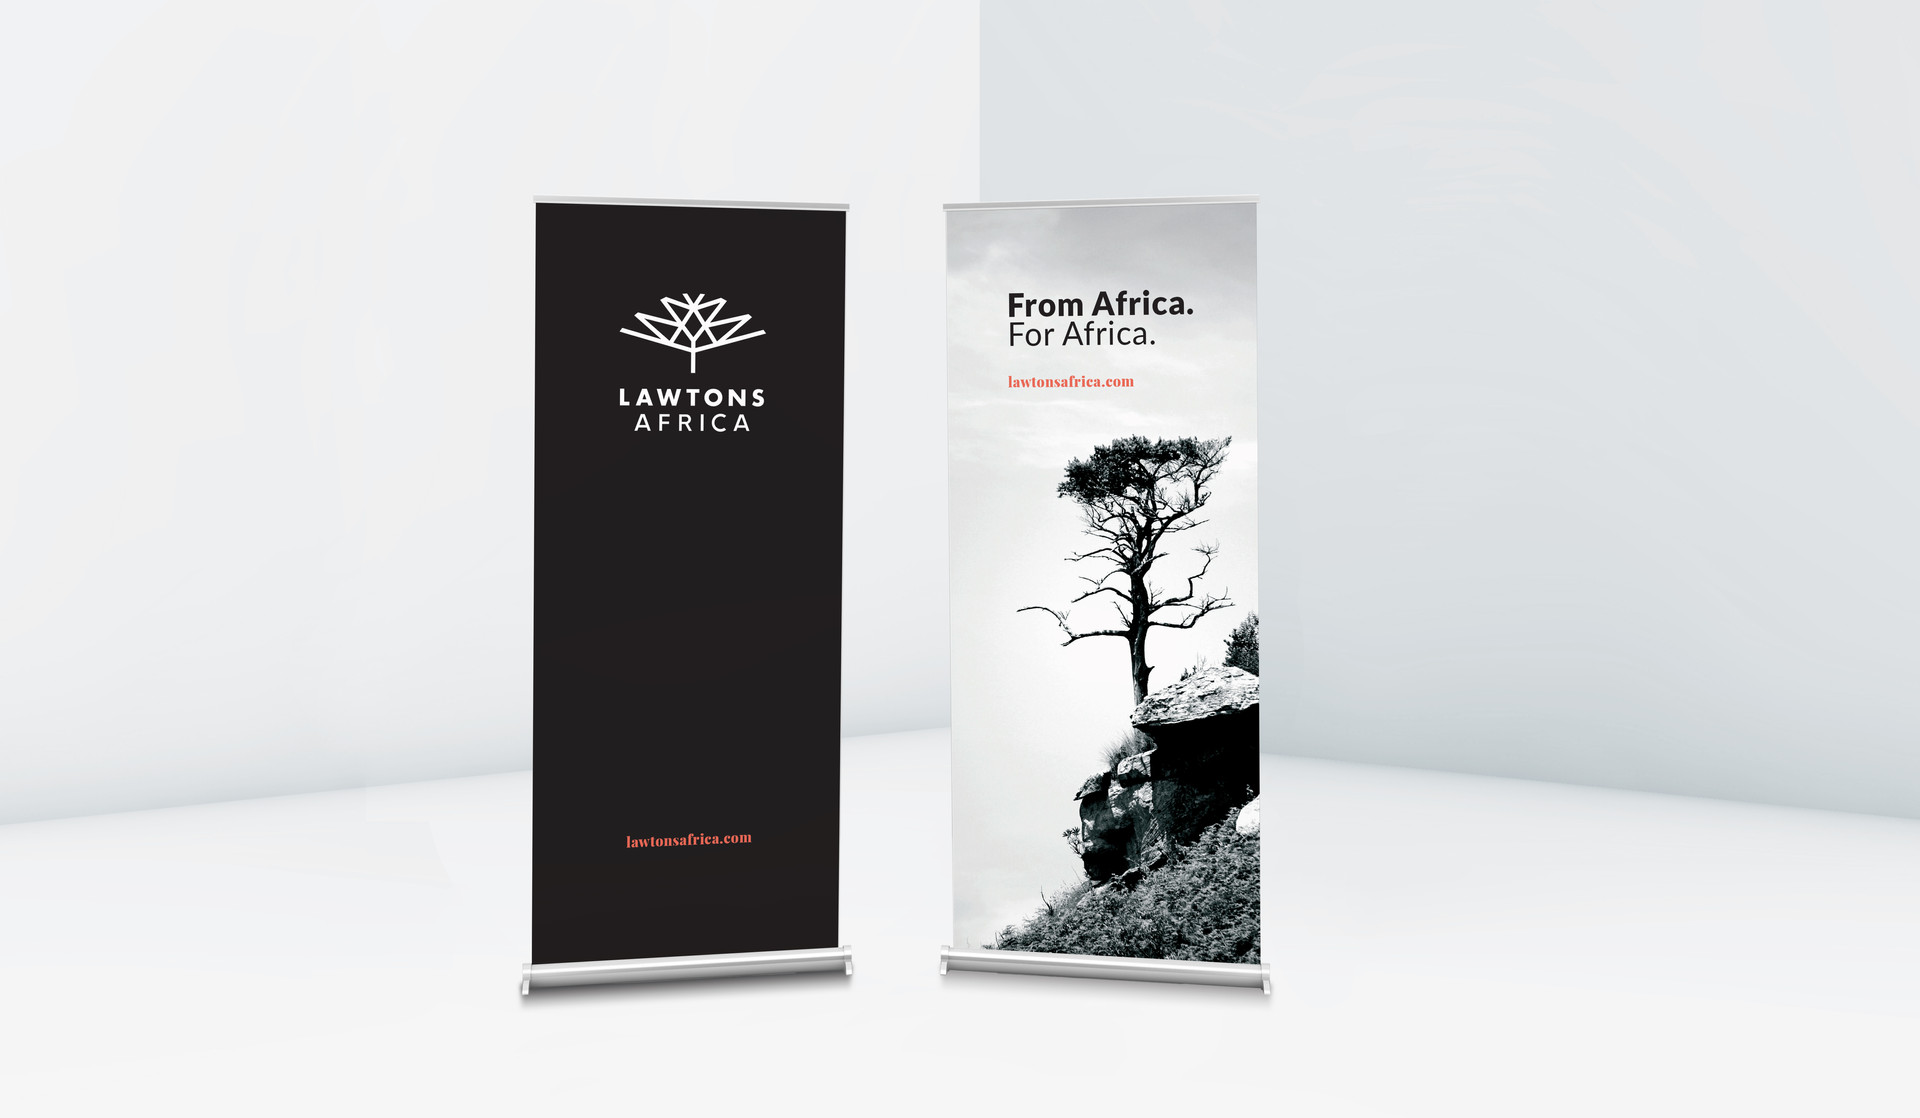 11-Law-Firm-Brand-Design-Pull-up-Banners